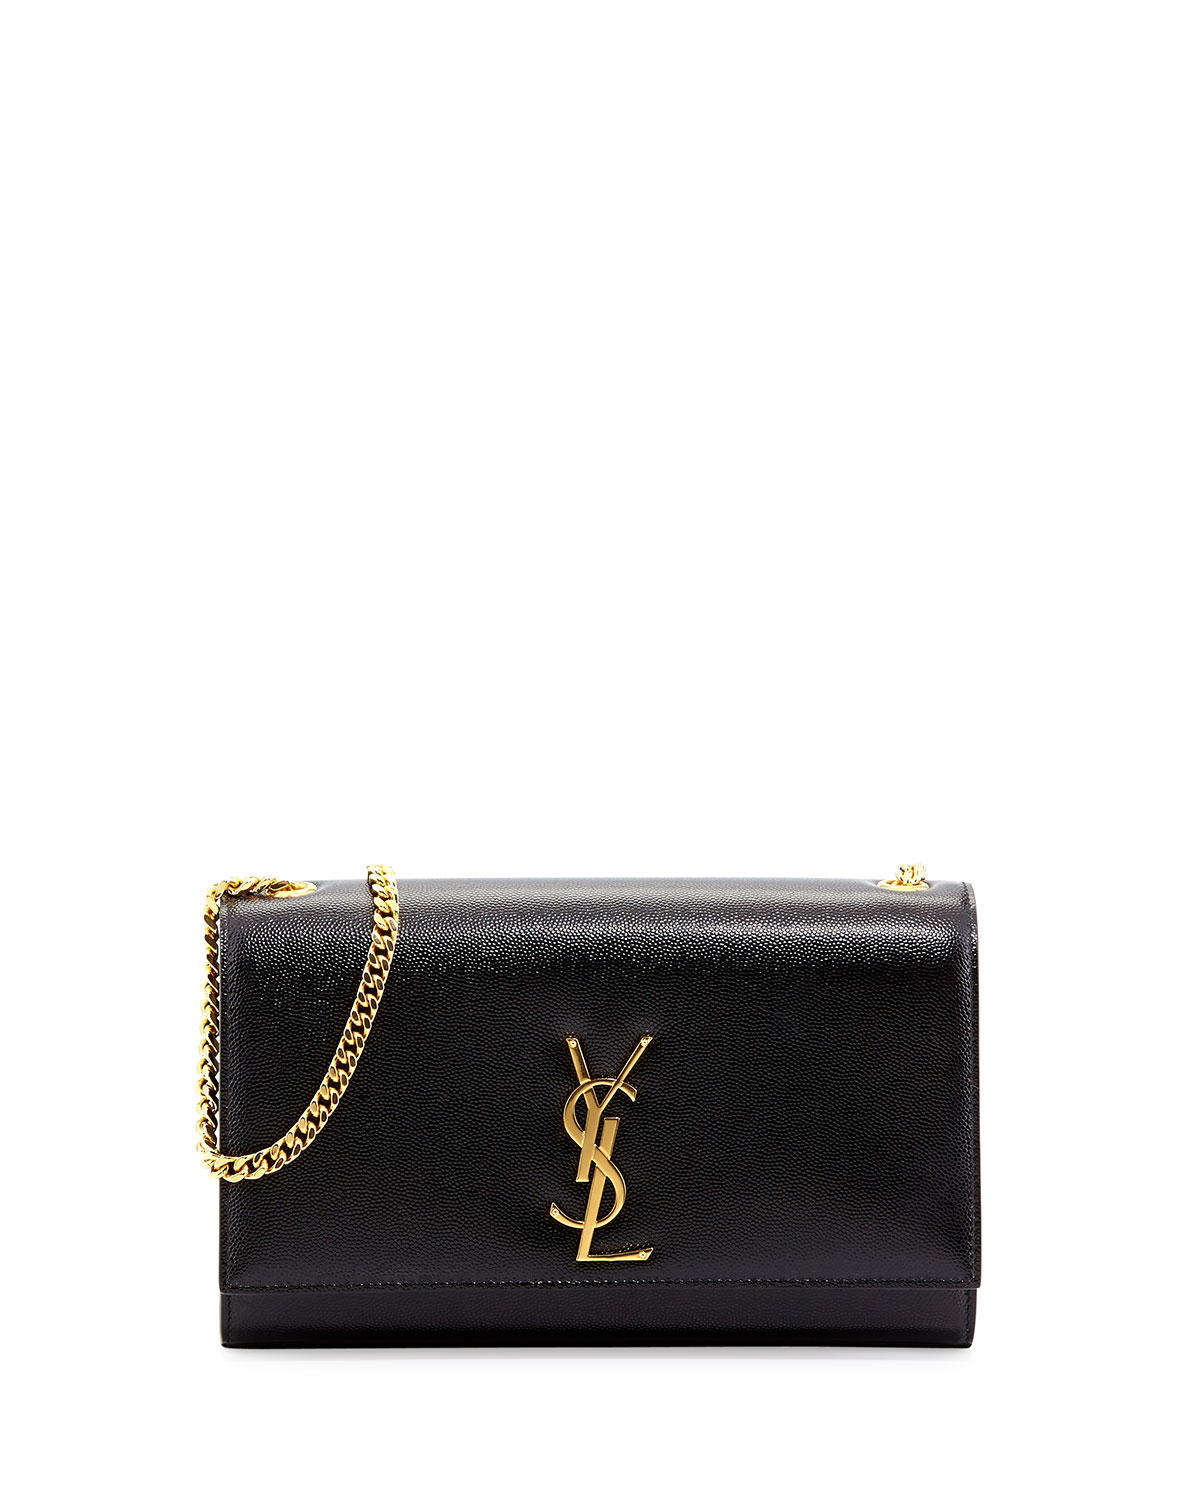 a85a7264117 Saint Laurent Kate Monogram YSL Medium Shoulder Bag   Neiman Marcus